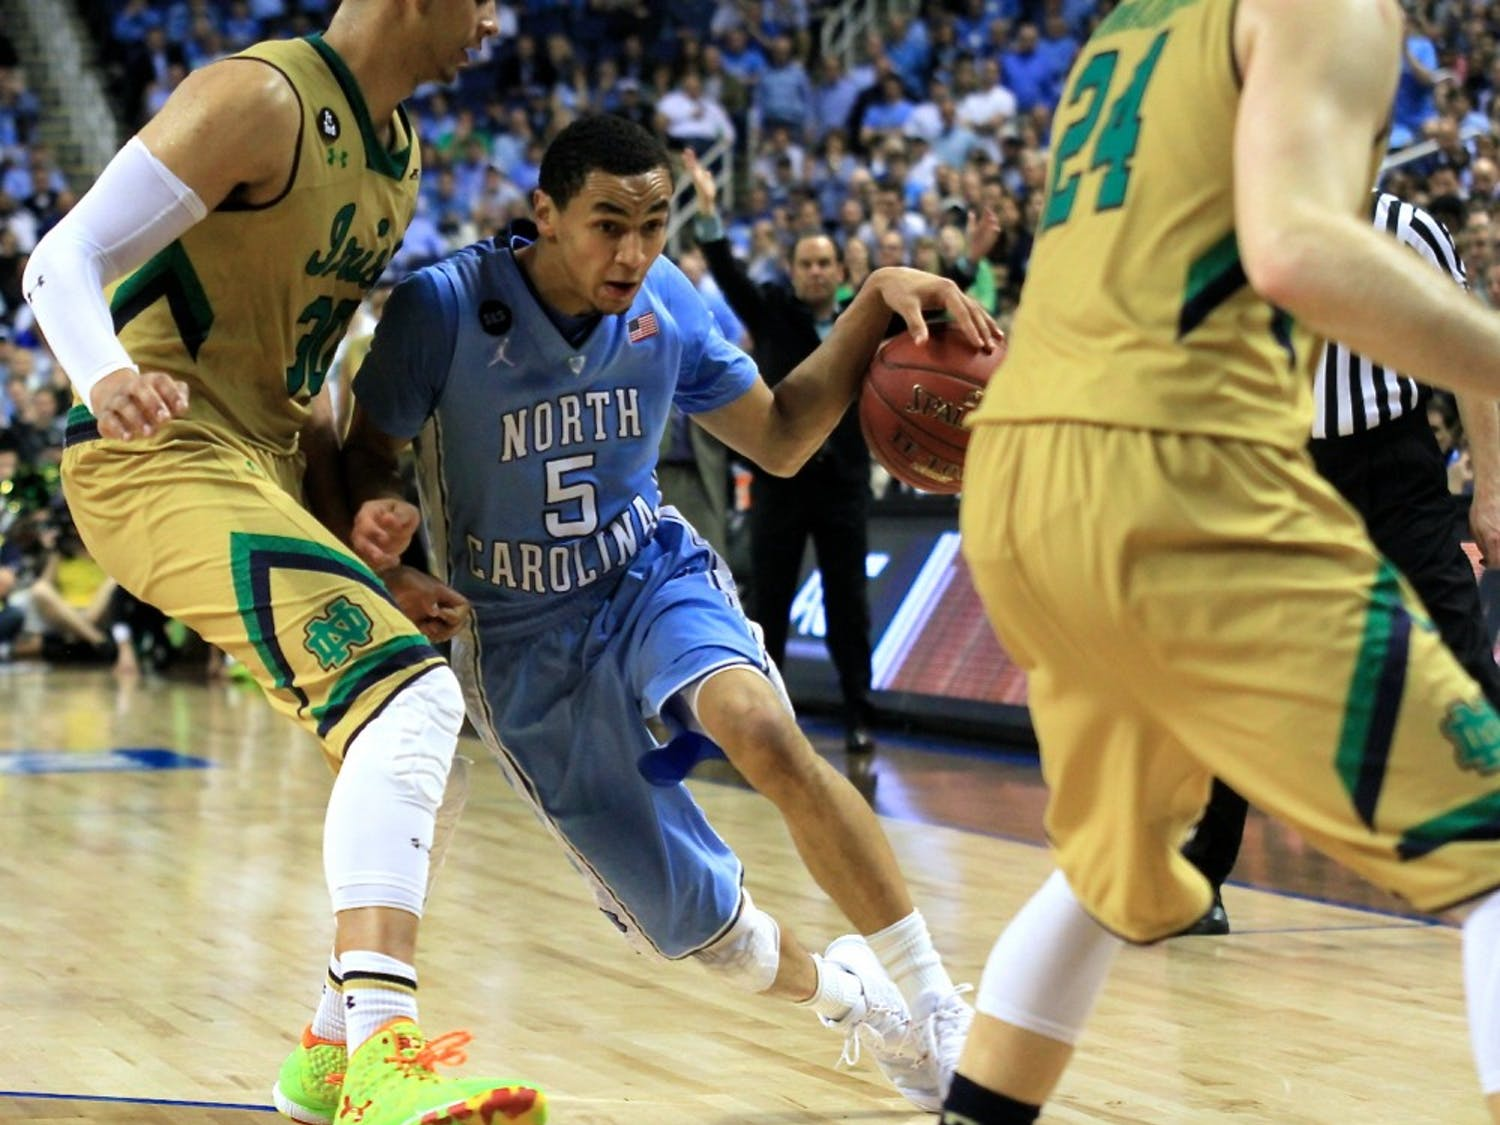 Marcus Paige (5) led the Tar Heels in points, scoring 24 total, Saturday night in the ACC championship game against Notre Dame. The Notre Dame leading scorer, Jerian Grant (22), also scored 24 points.